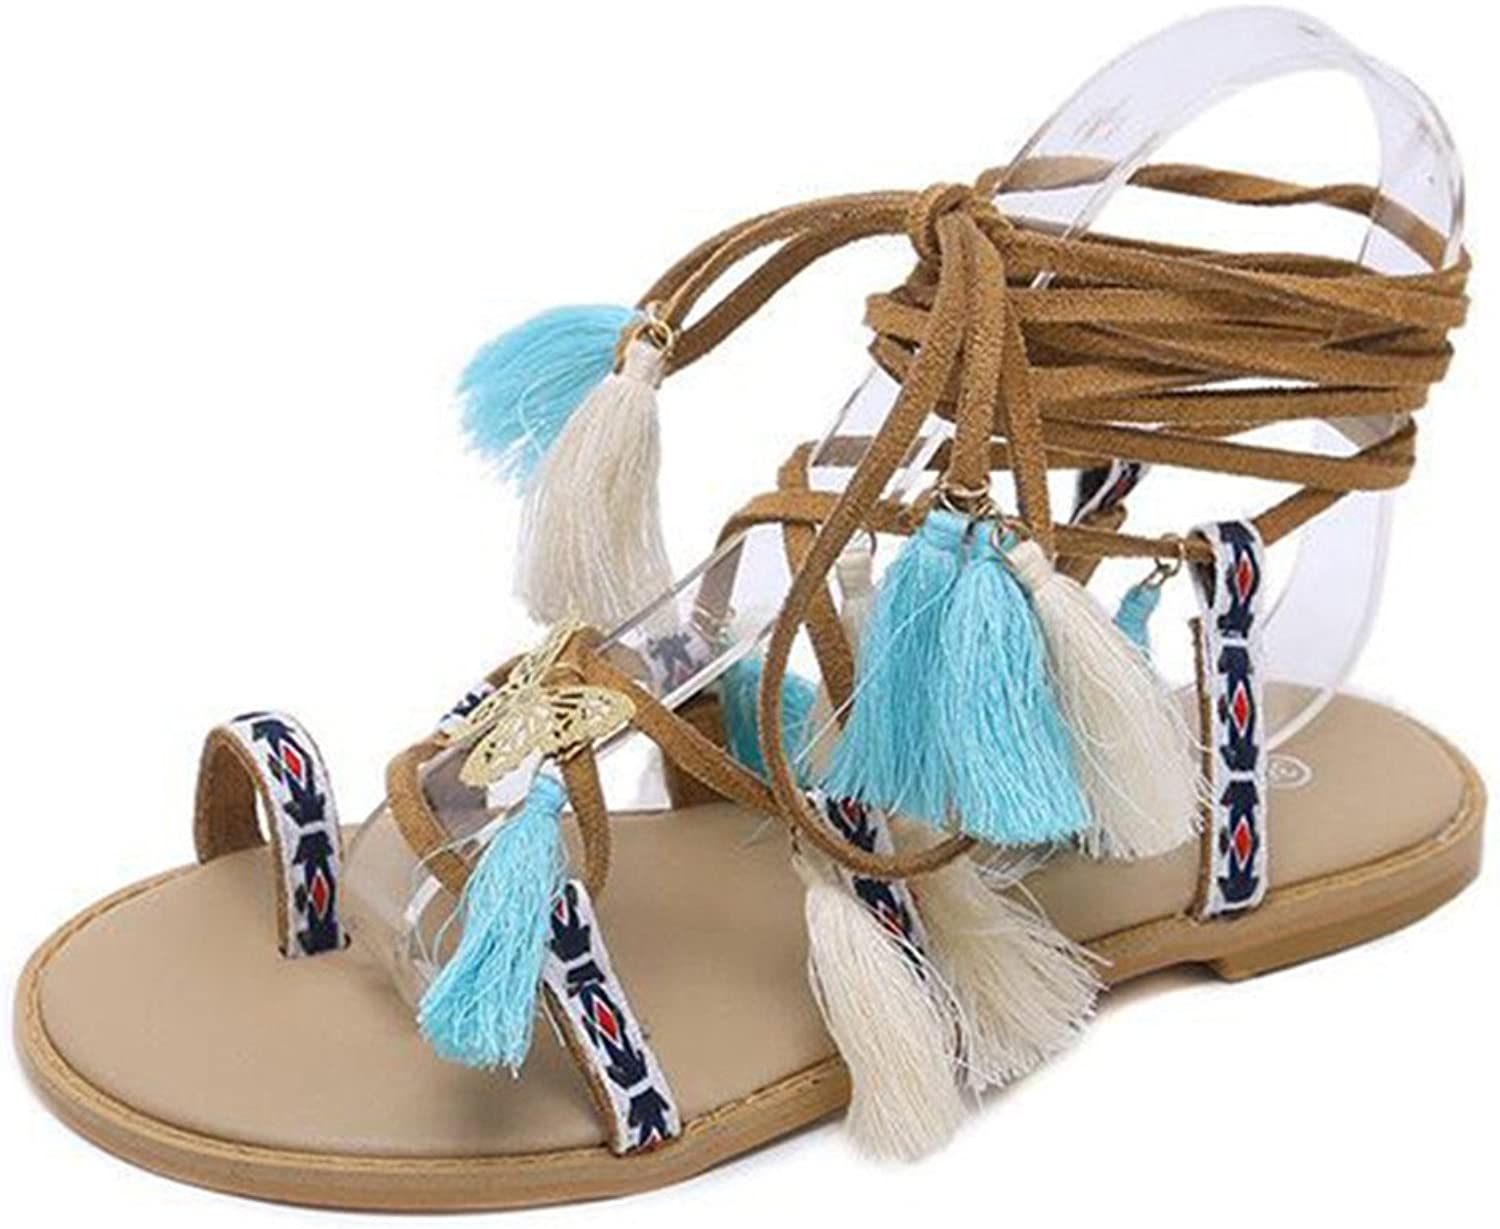 Giles Jones Flat Sandals for Women,Bohemia Tassel Lace Up Ring Toe Flip Flops Beach shoes